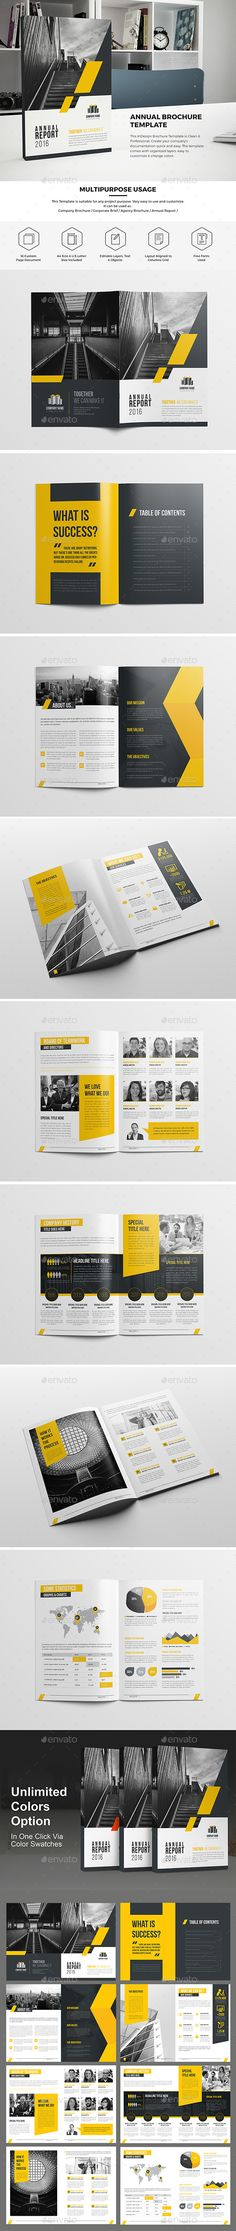 Haweya Annual Report V02  - Corporate Brochure Template InDesign INDD. Download here: http://graphicriver.net/item/haweya-annual-report-v02-/16435688?s_rank=108&ref=yinkira